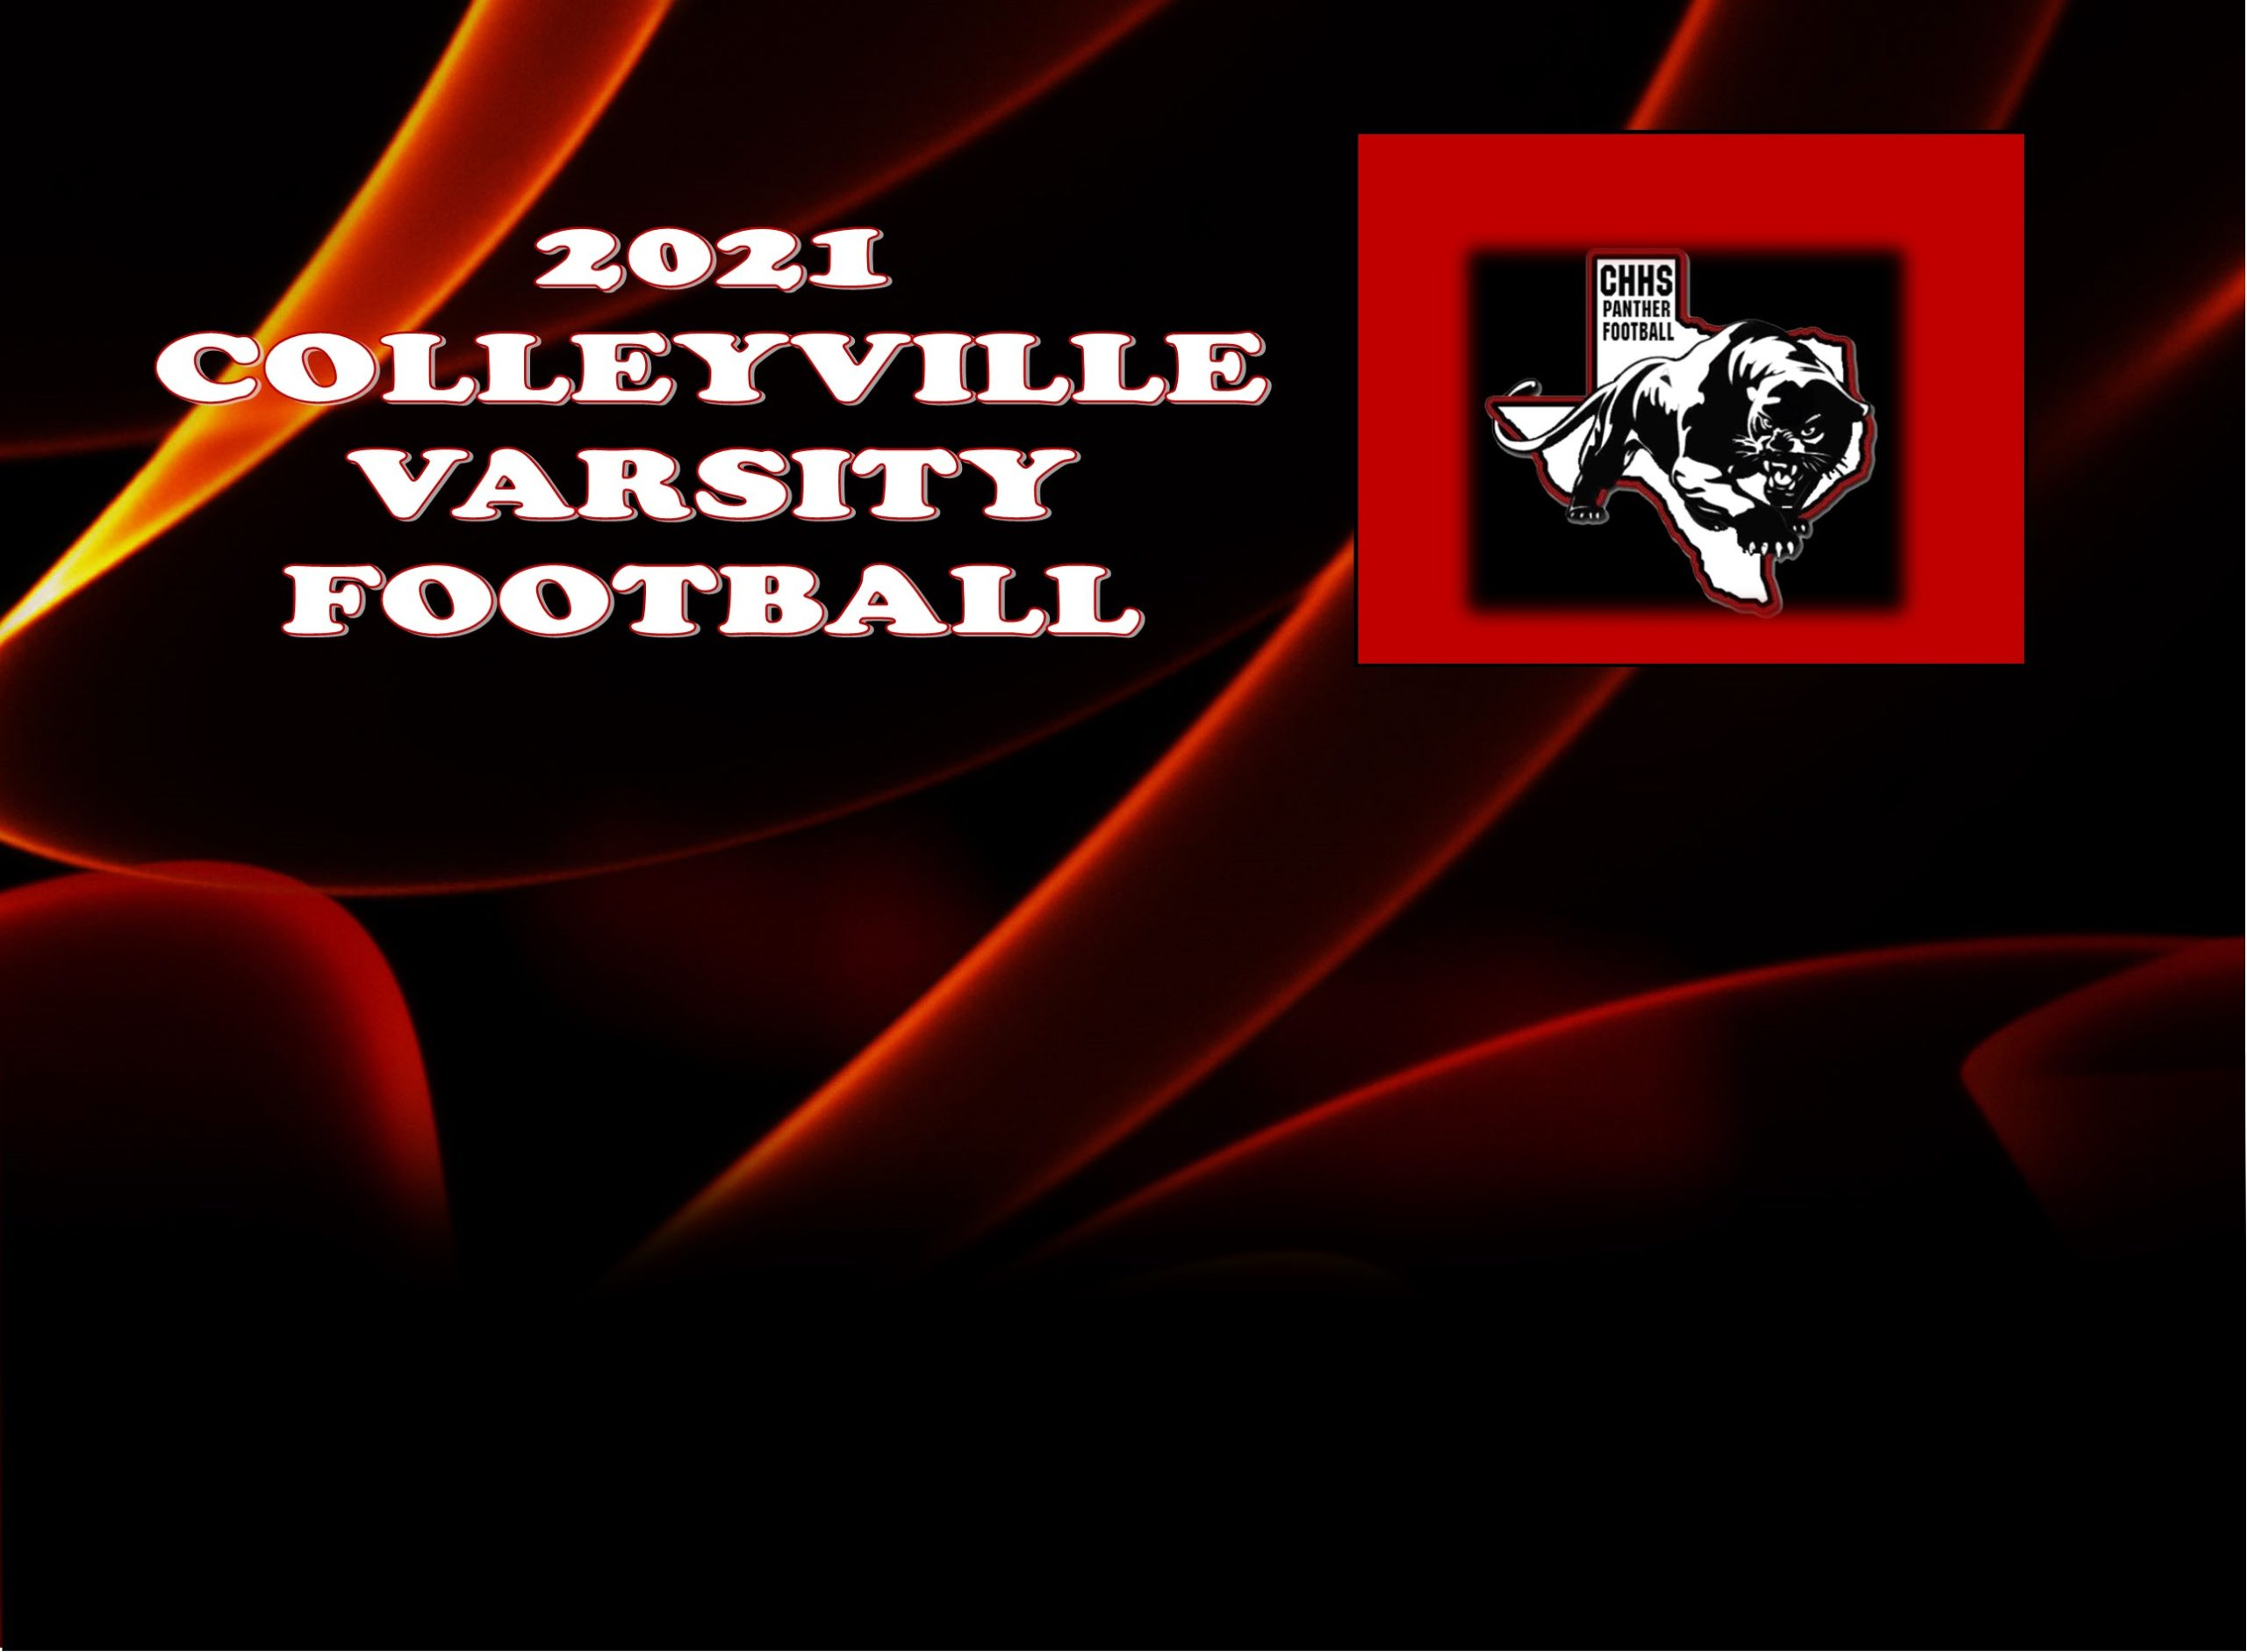 GCISD Football:  Colleyville Panthers Roll Past Richland Royals to Win First District Game 45-29